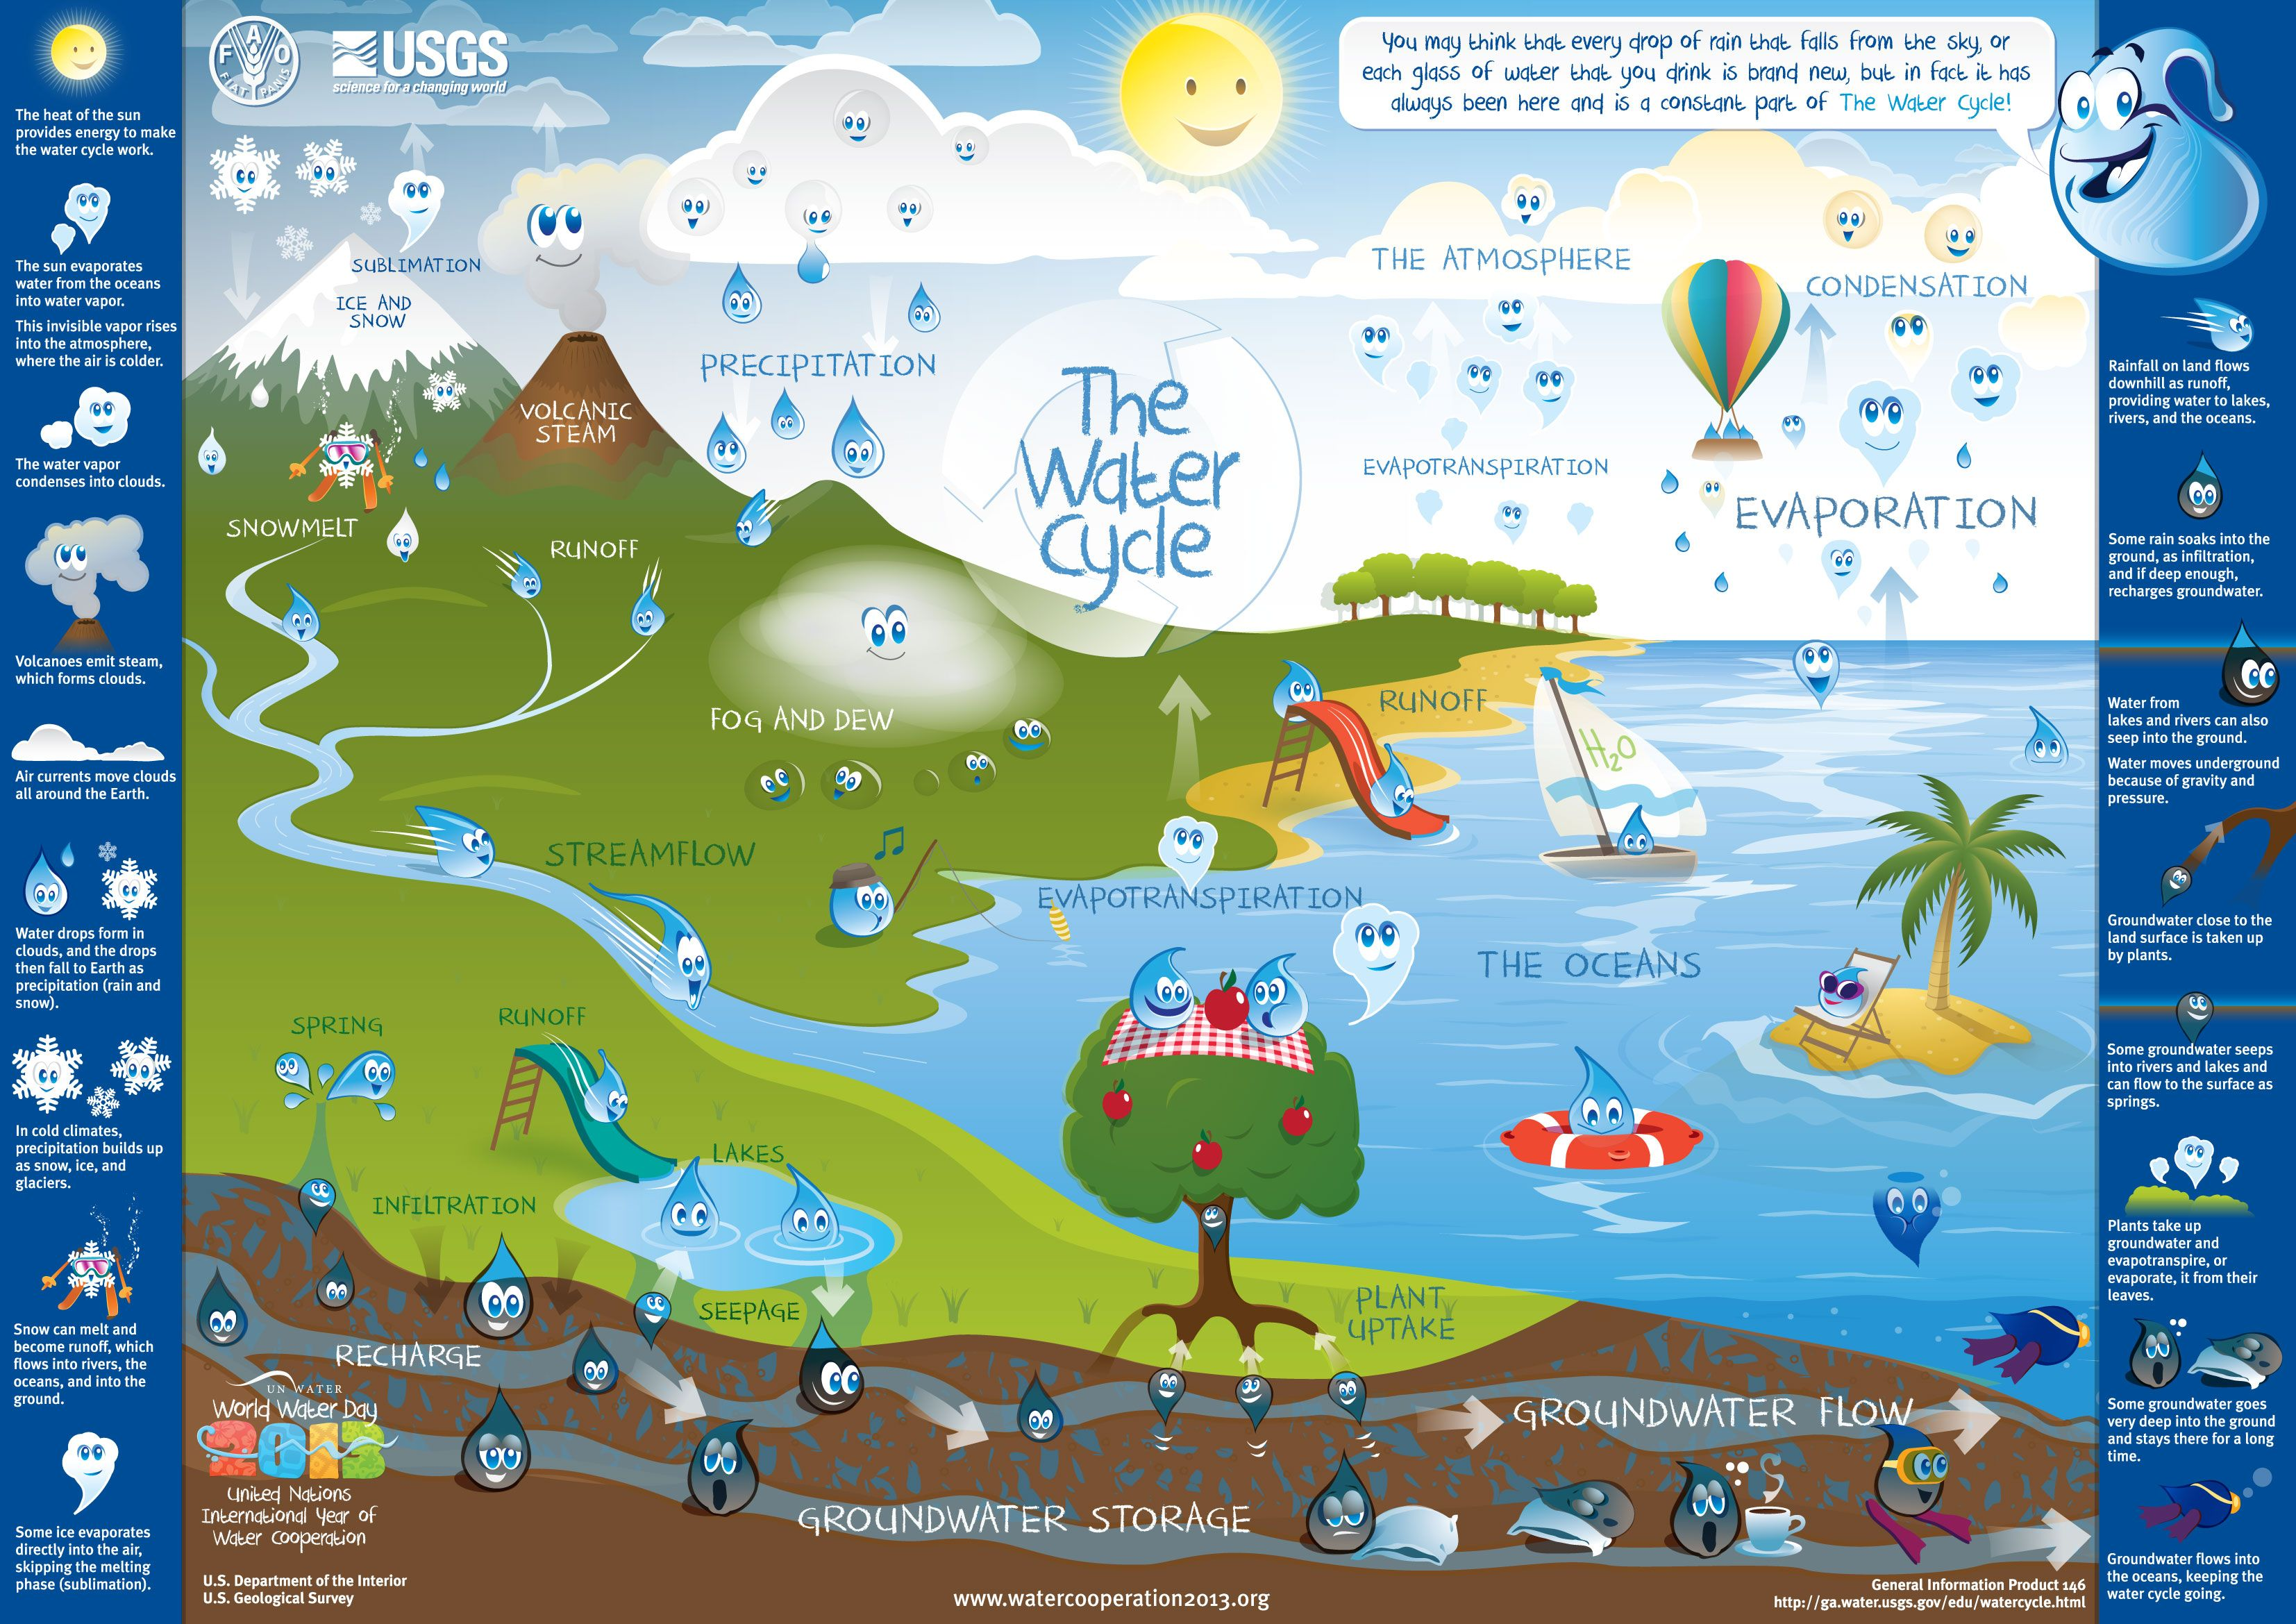 A Great Poster Displaying The Water Cycle